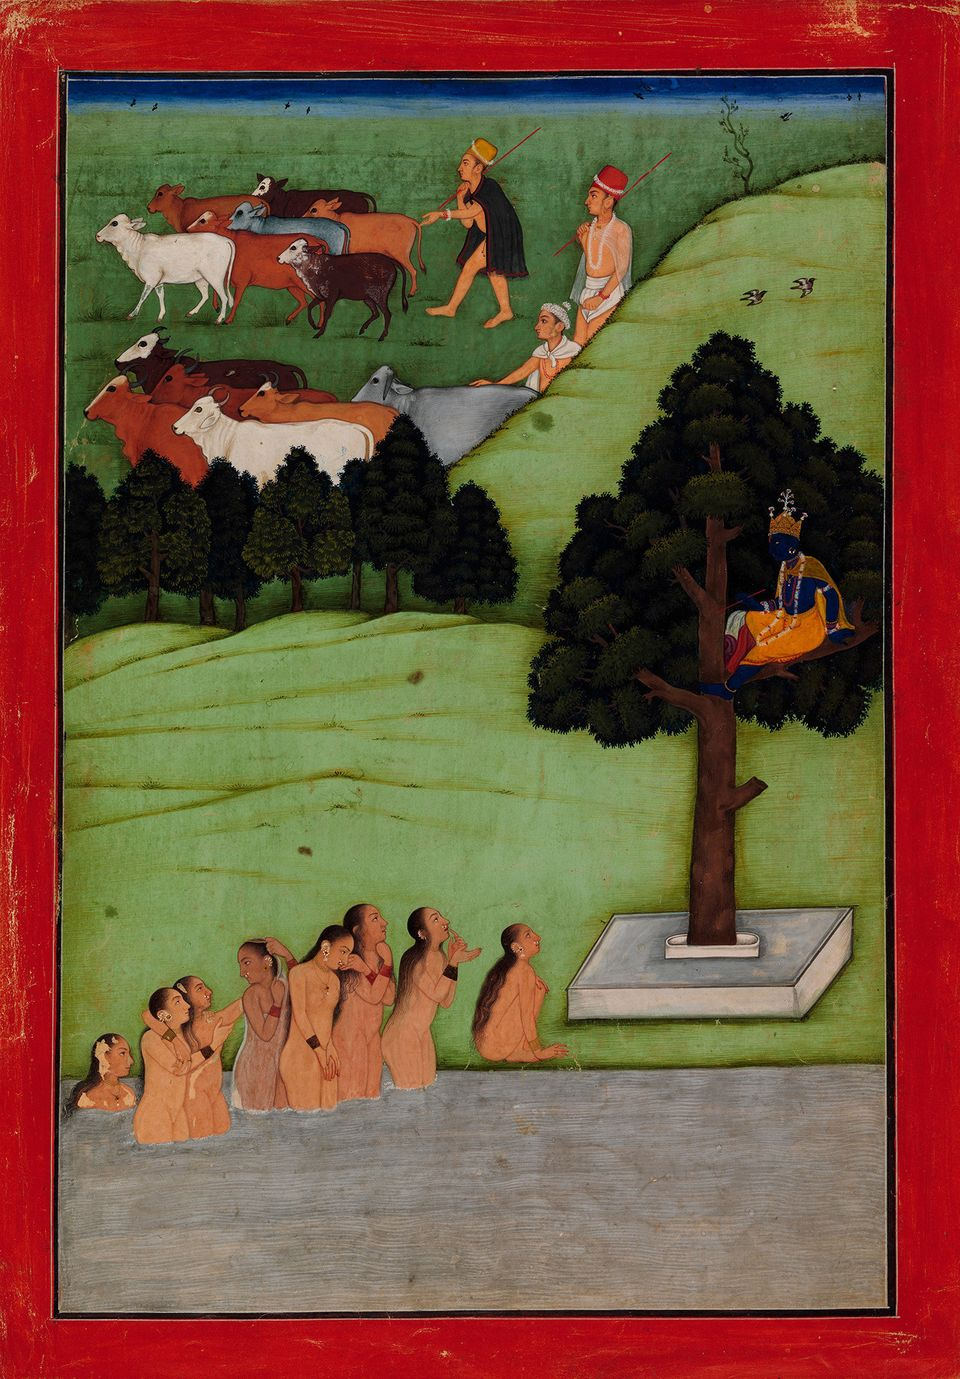 """Krishna Steals the Clothing of the Gopis (Cow Maidens)."" Attributed to the artist known as the Early Master at&nbs"